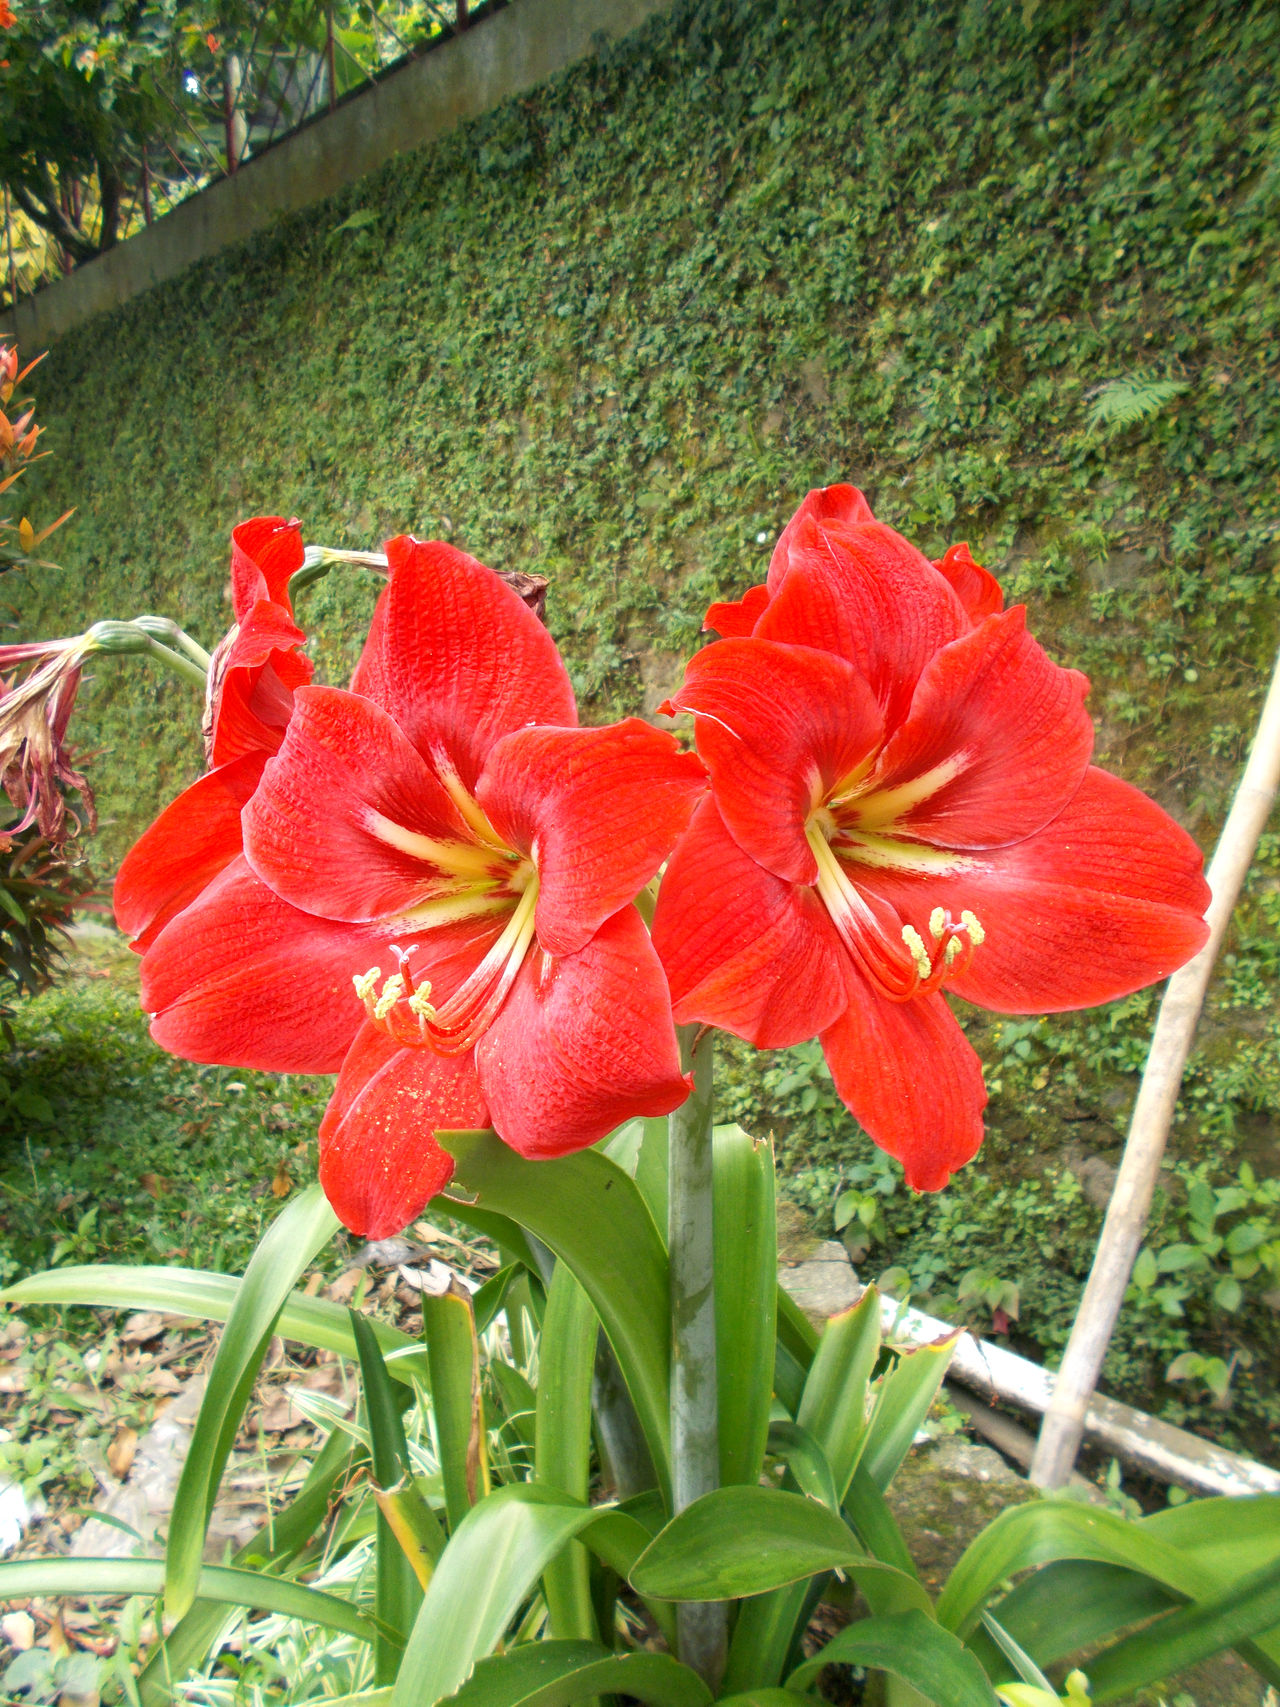 Amaryllis red beauty flower on the garden Amaryllis Amaryllis Belladonna Amaryllis Flower Amaryllis In Bloom Amaryllis Red Flower White Rock Beauty Beauty In Nature Blooming Day Day Lily Flower Flower Head Fragility Freshness Garden Green Color Leaf Nature No People Outdoors Petal Plant Red